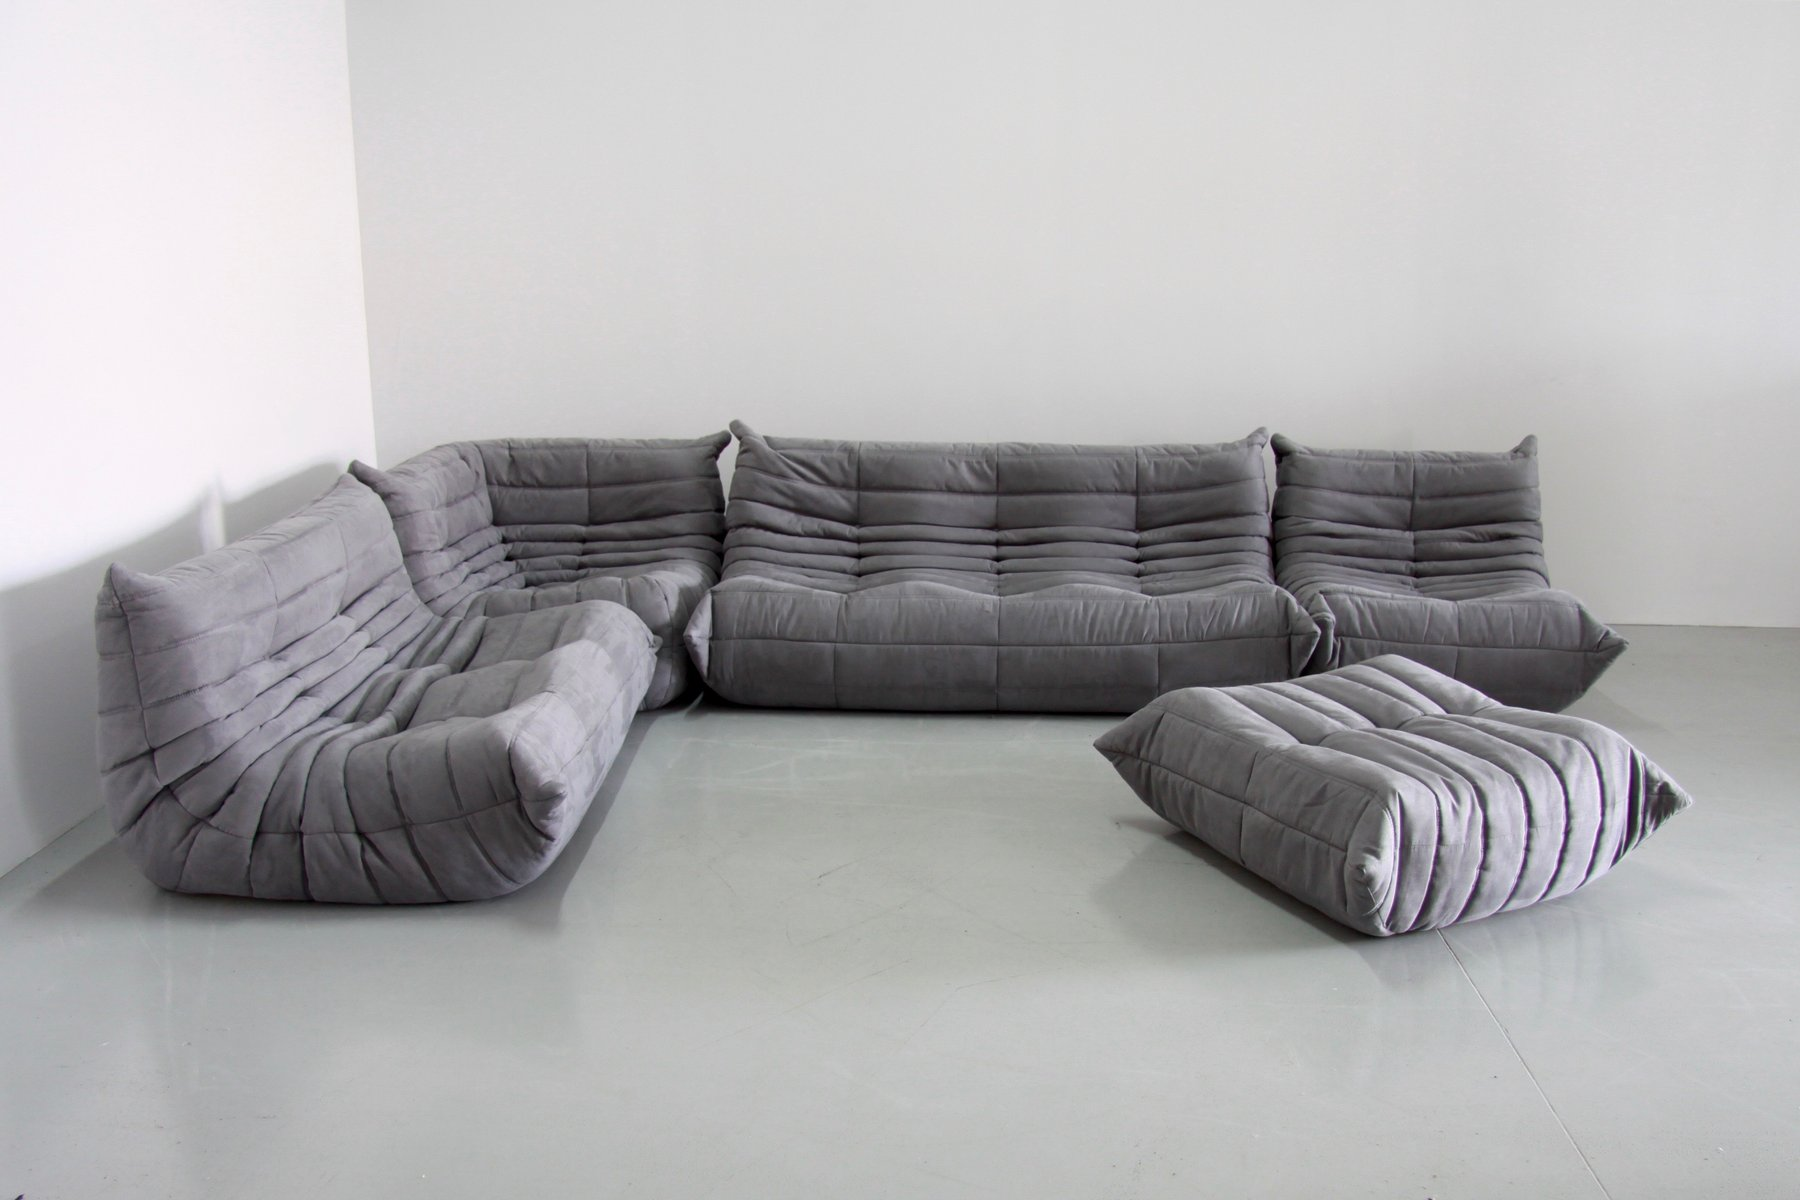 Grey microfibre togo sofa set by michel ducaroy for ligne roset 1970s set of 5 for sale at pamono - Togo ligne roset ...